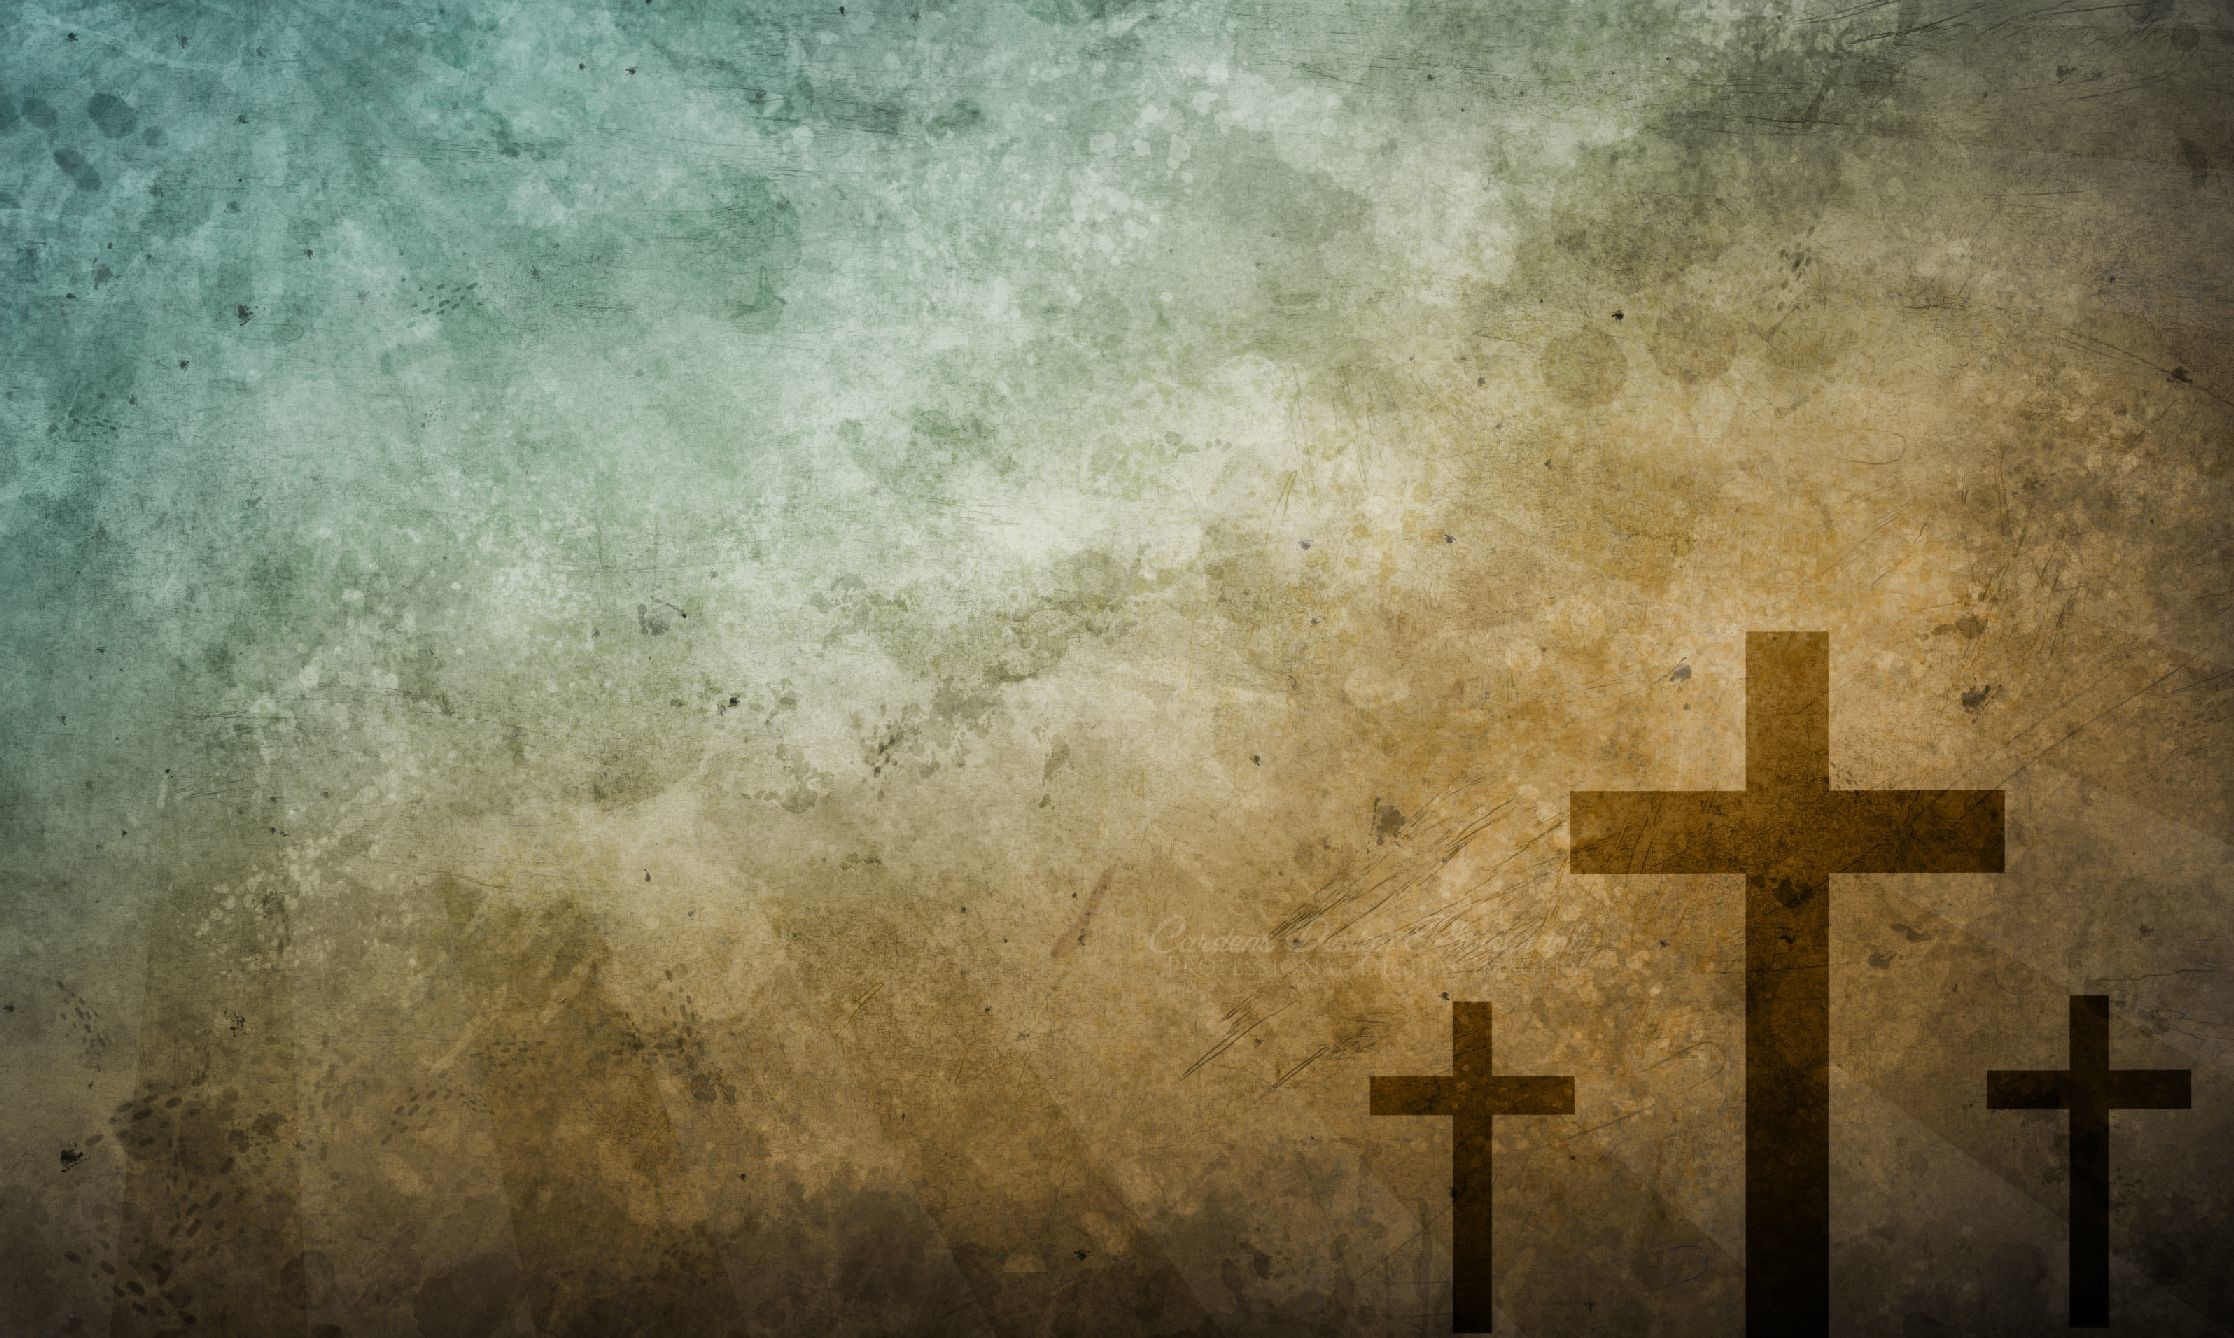 christian background images  u00b7 u2460 wallpapertag